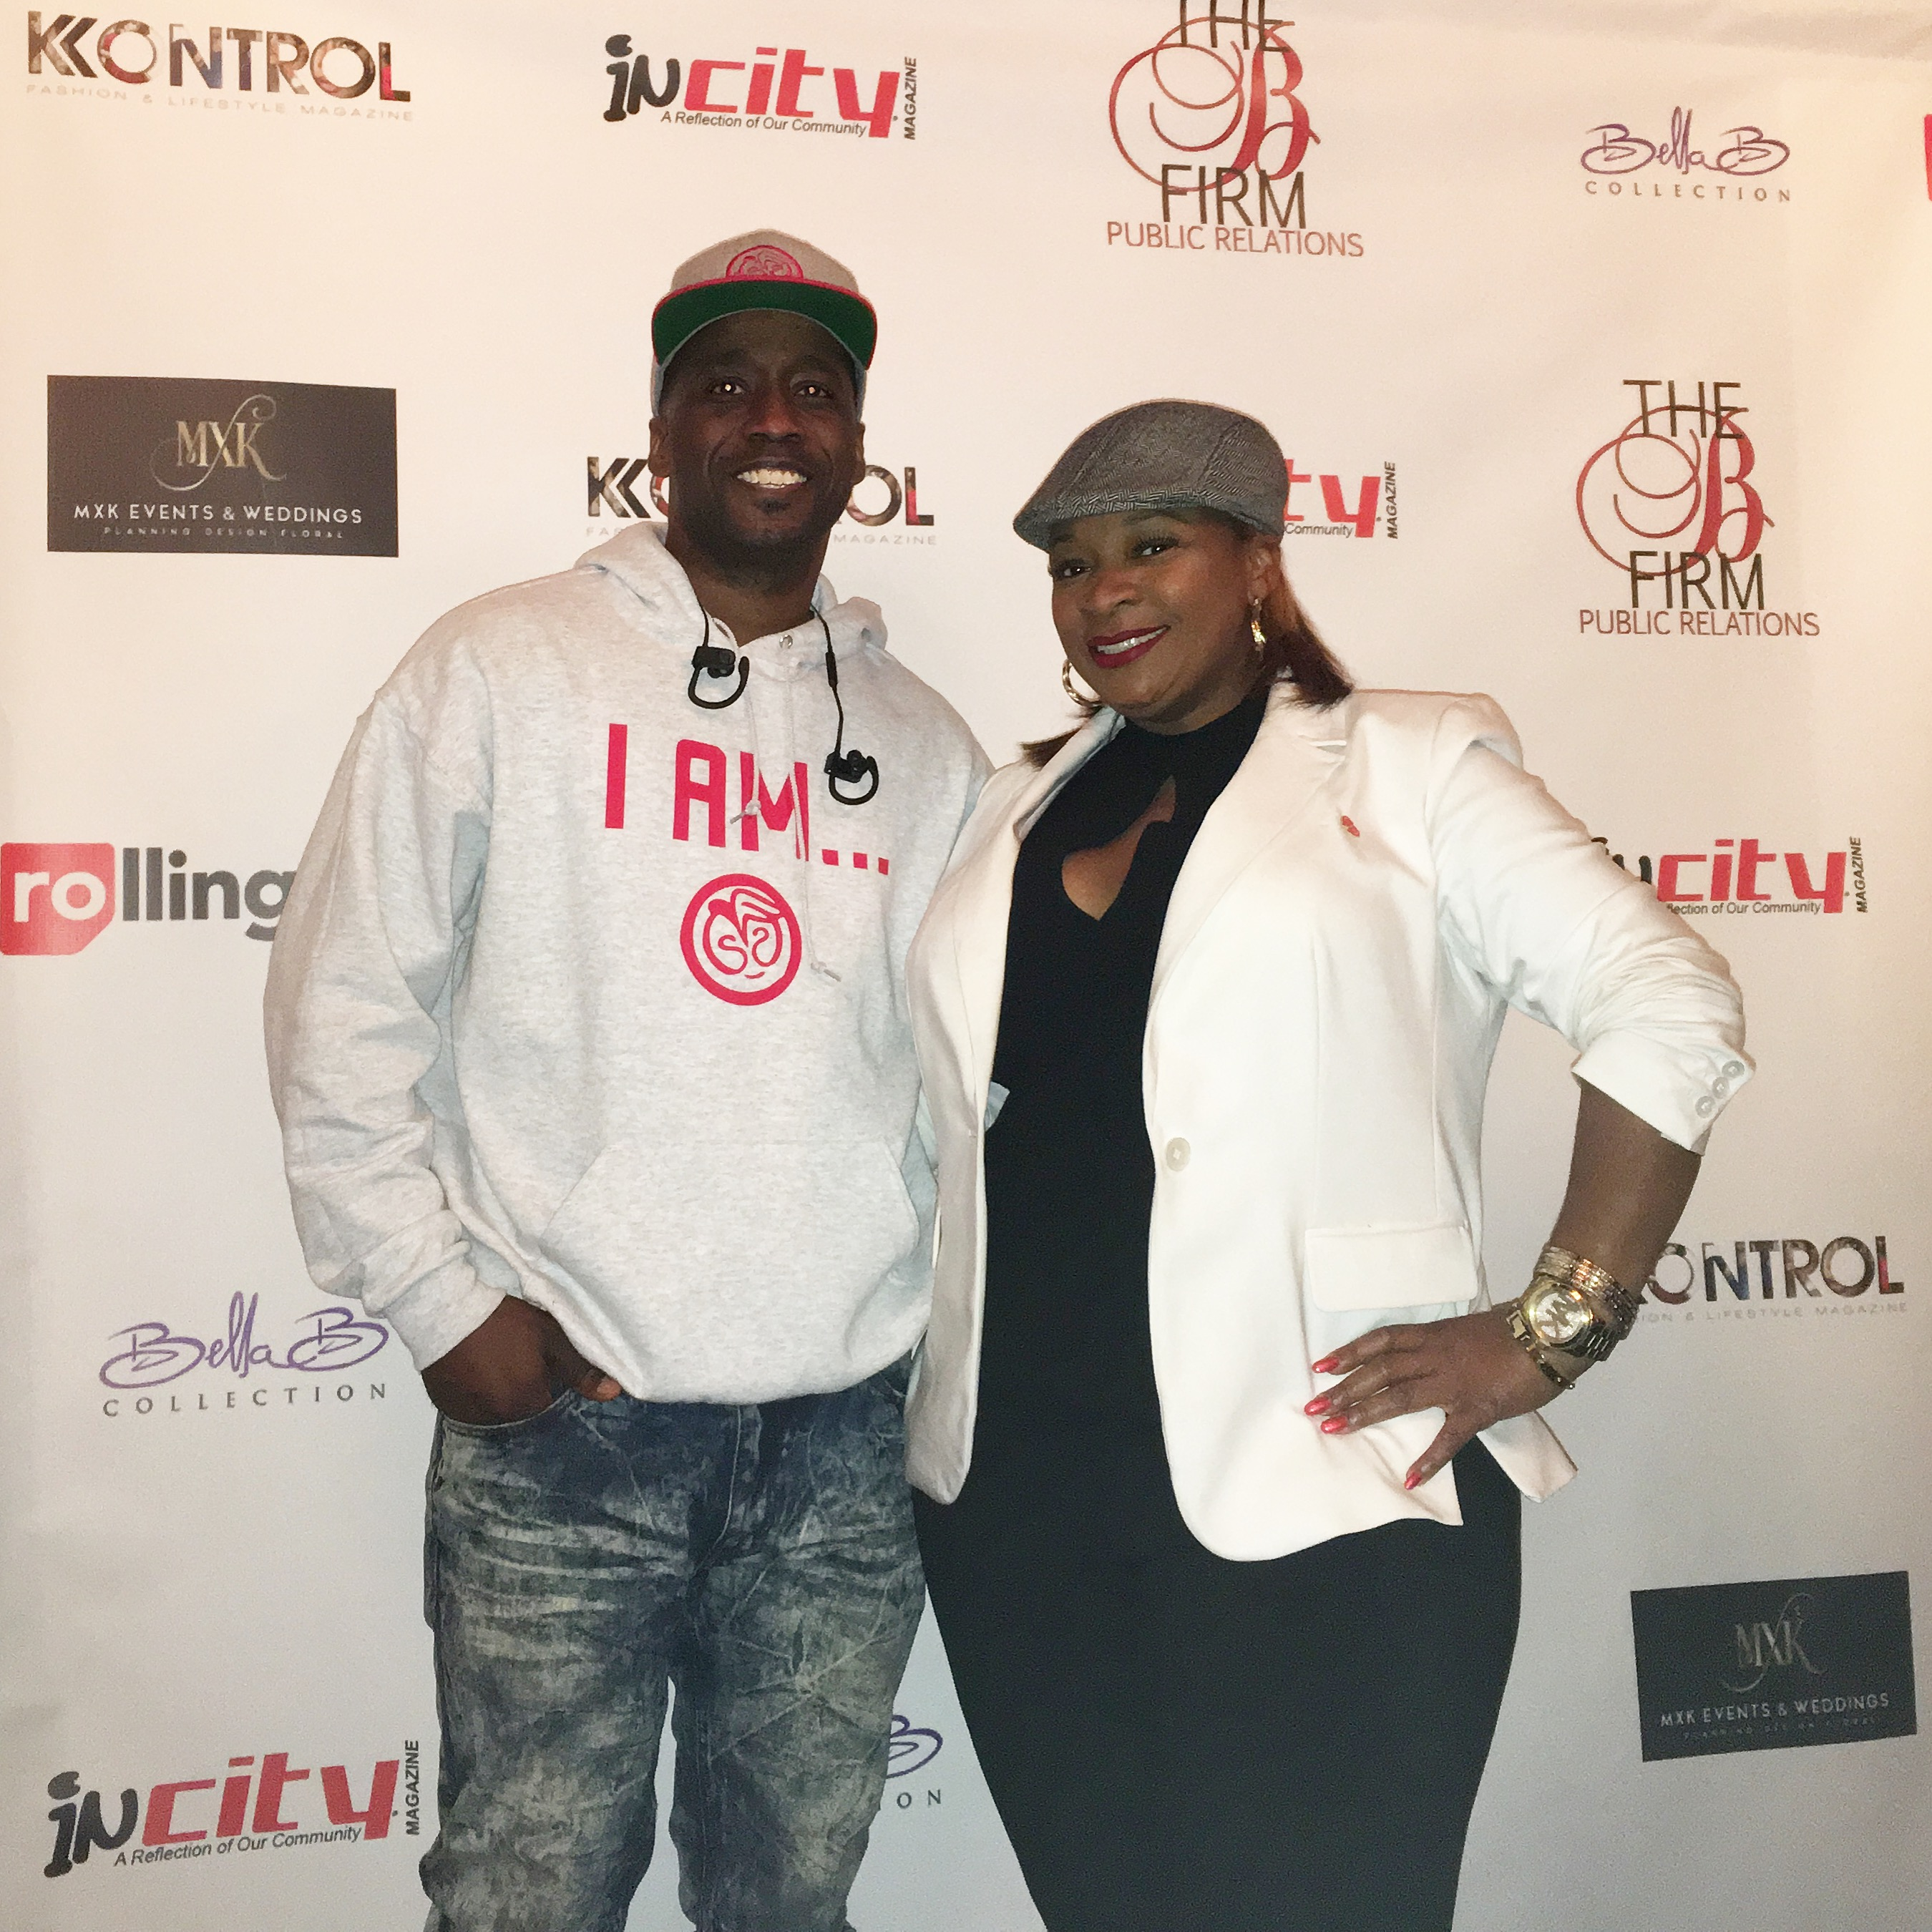 pictured: Christopher Thomas (inCity Magazine), Miss Monique (iHeart Radio)